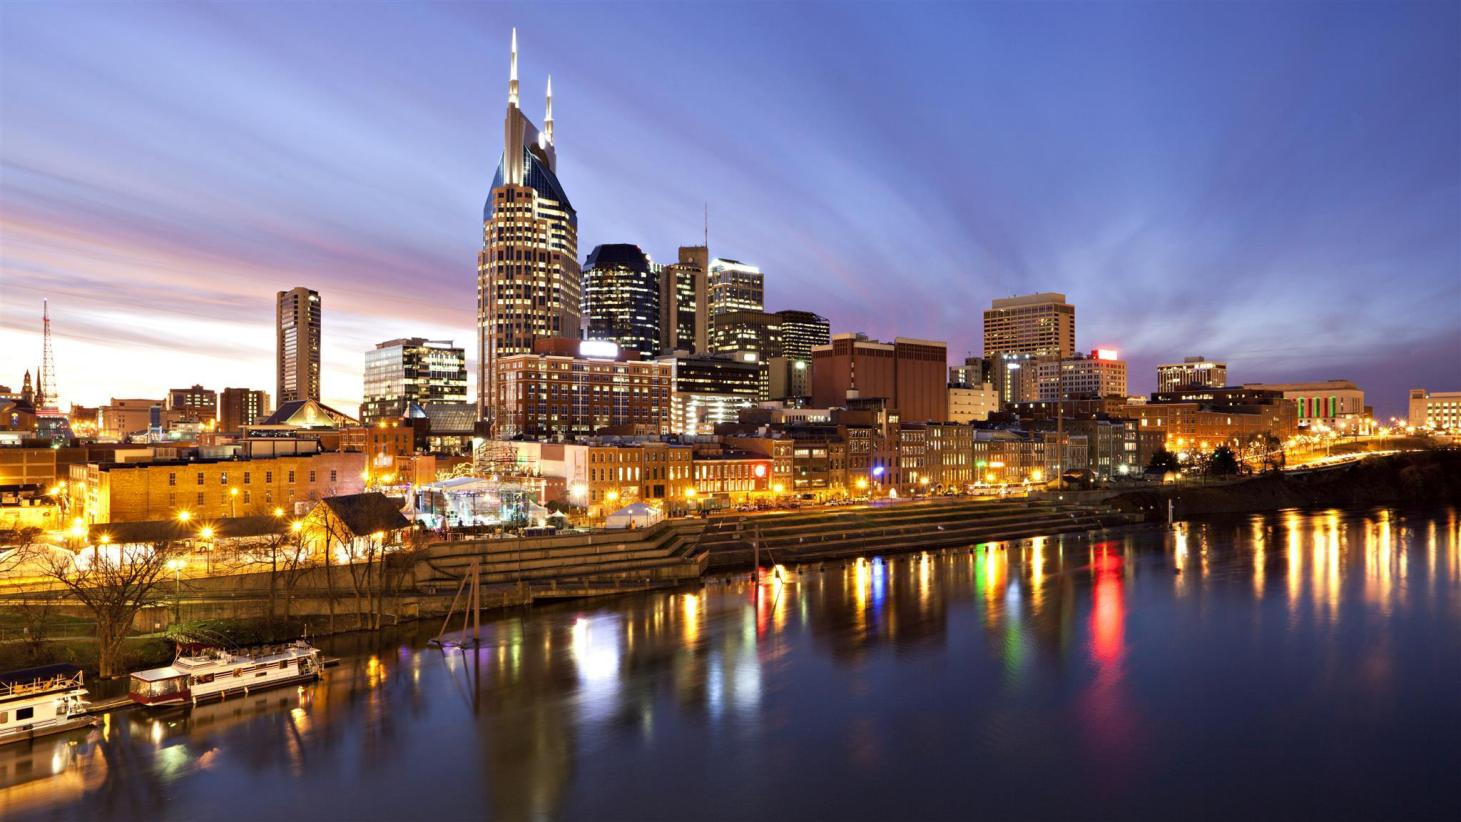 10 Best Nashville (TN) Hotels: HD Pictures + Reviews of ... Downtown Nashville Nightlife Map on nashville visitors map, nashville hotel map, downtown roanoke nightlife, nashville il map, springfield city street map, nashville tennessee map, downtown dallas street map, downtown seattle map tourist, nashville tour map, nashville area map, lower broadway nashville map, downtown springfield il map, nashville district map, downtown northampton ma map, broadway nashville tn map, downtown vegas bars, downtown dc at night, downtown raleigh bars, downtown portland bars and clubs, bourbon street bars map,